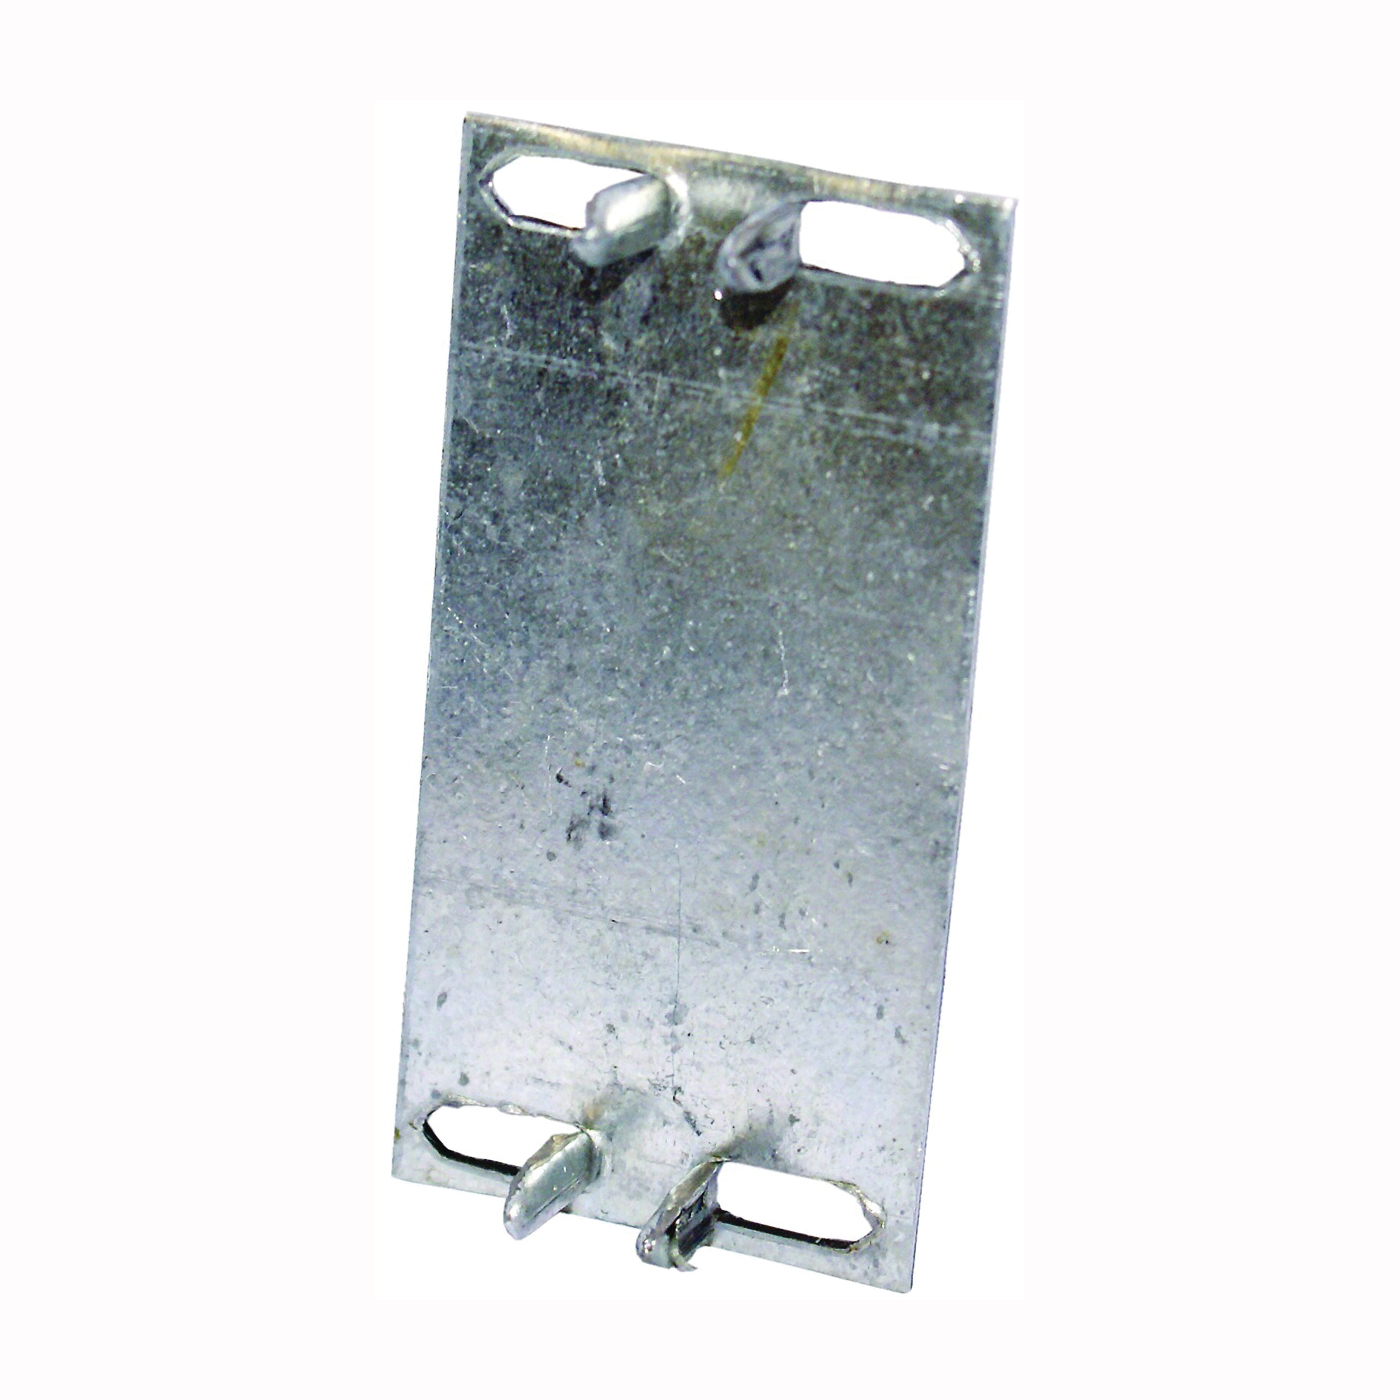 Picture of MiTek KNS Series KNS1 Protection Plate, 3 in L, 1-1/2 in W, 1/16 in Thick, Aluminum